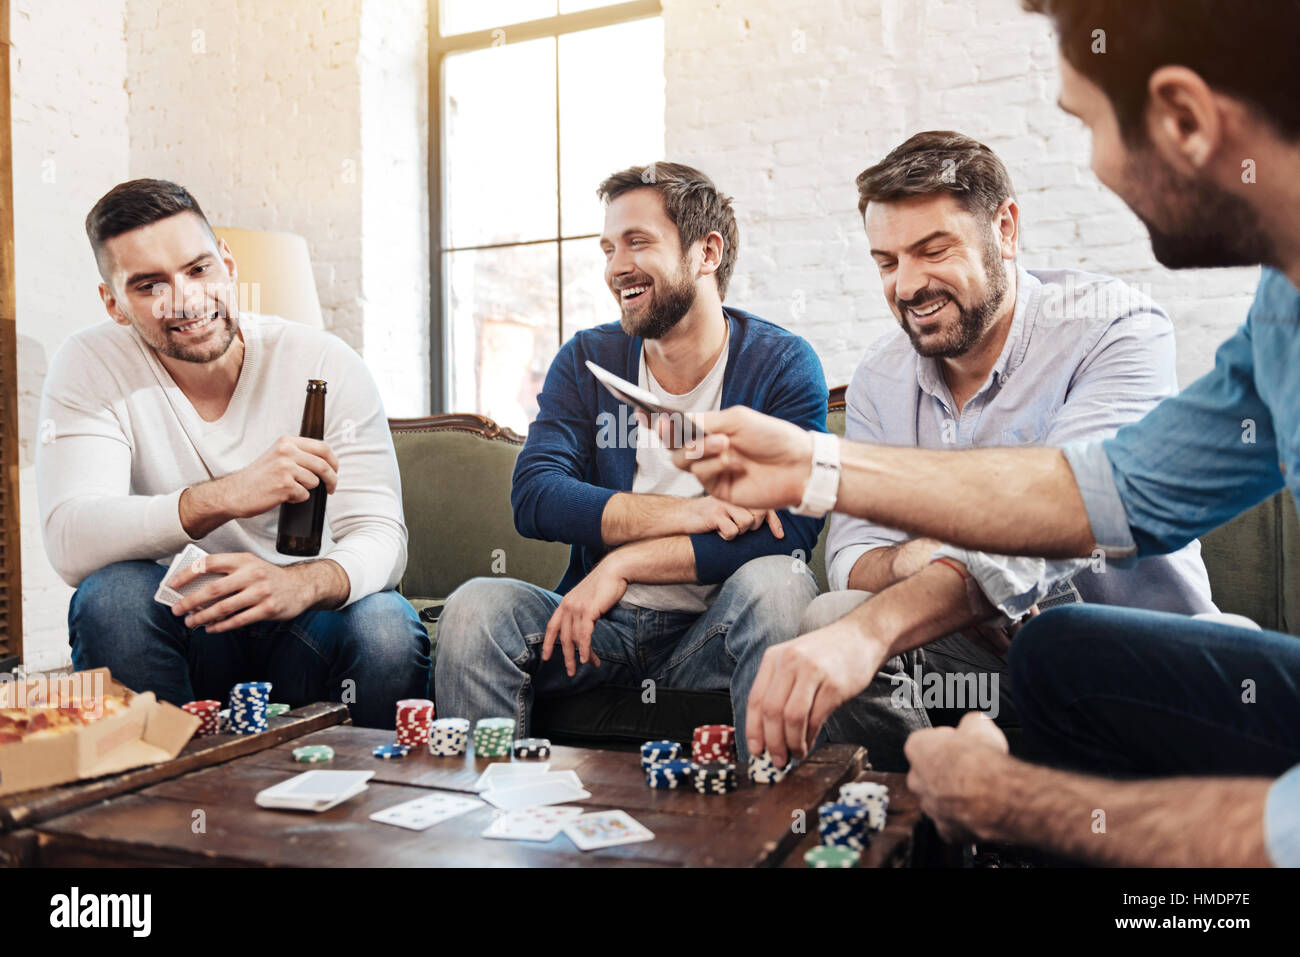 Cheerful pleasant men playing the poker game - Stock Image